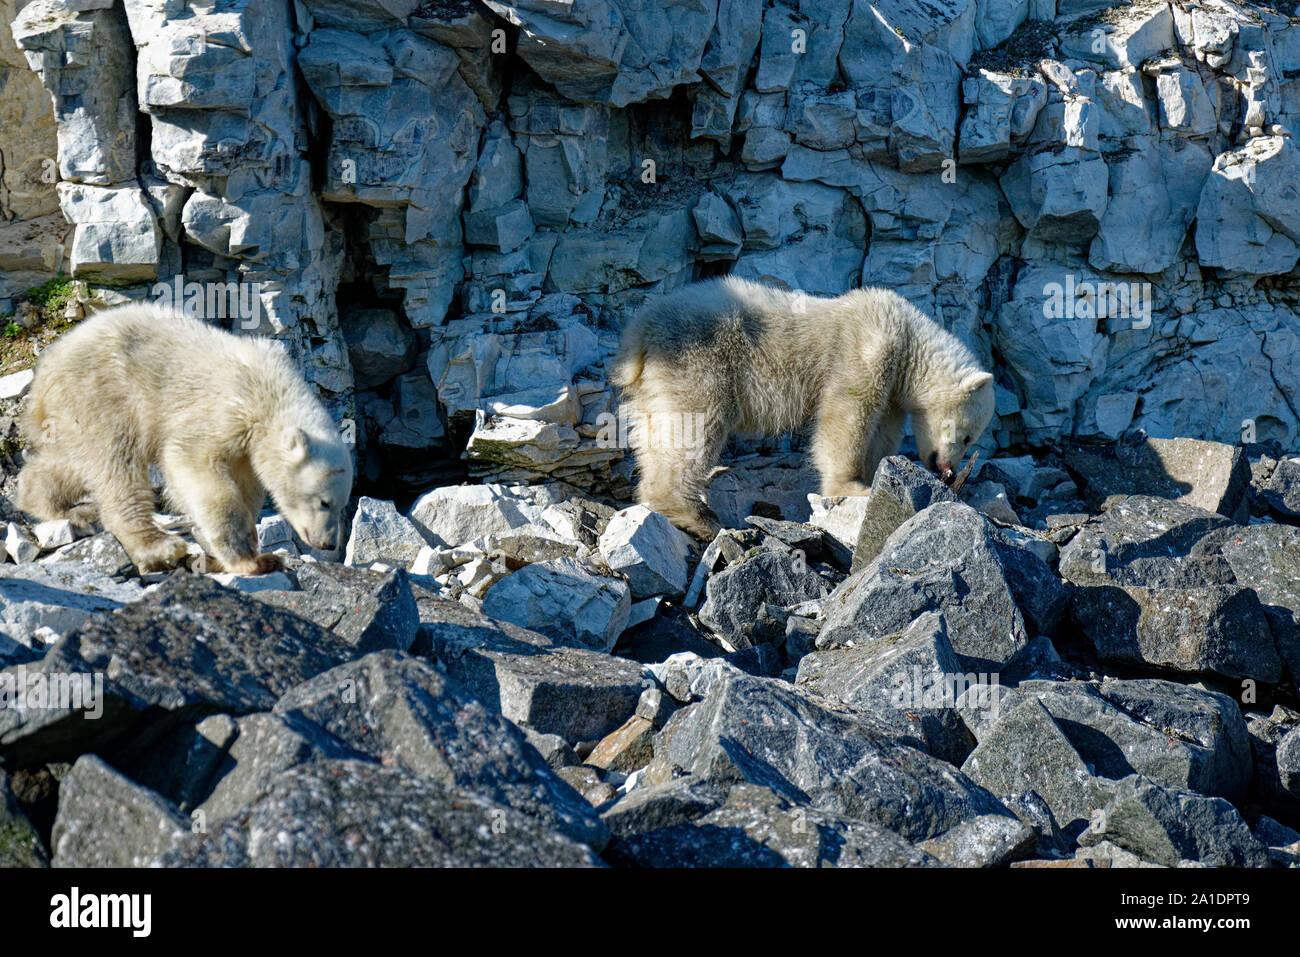 Two polarbear cubs (Ursus maritimus) looking for food at the bird cliff Alkefjellet, Hinlopen Strait, Svalbard, Norway Stock Photo